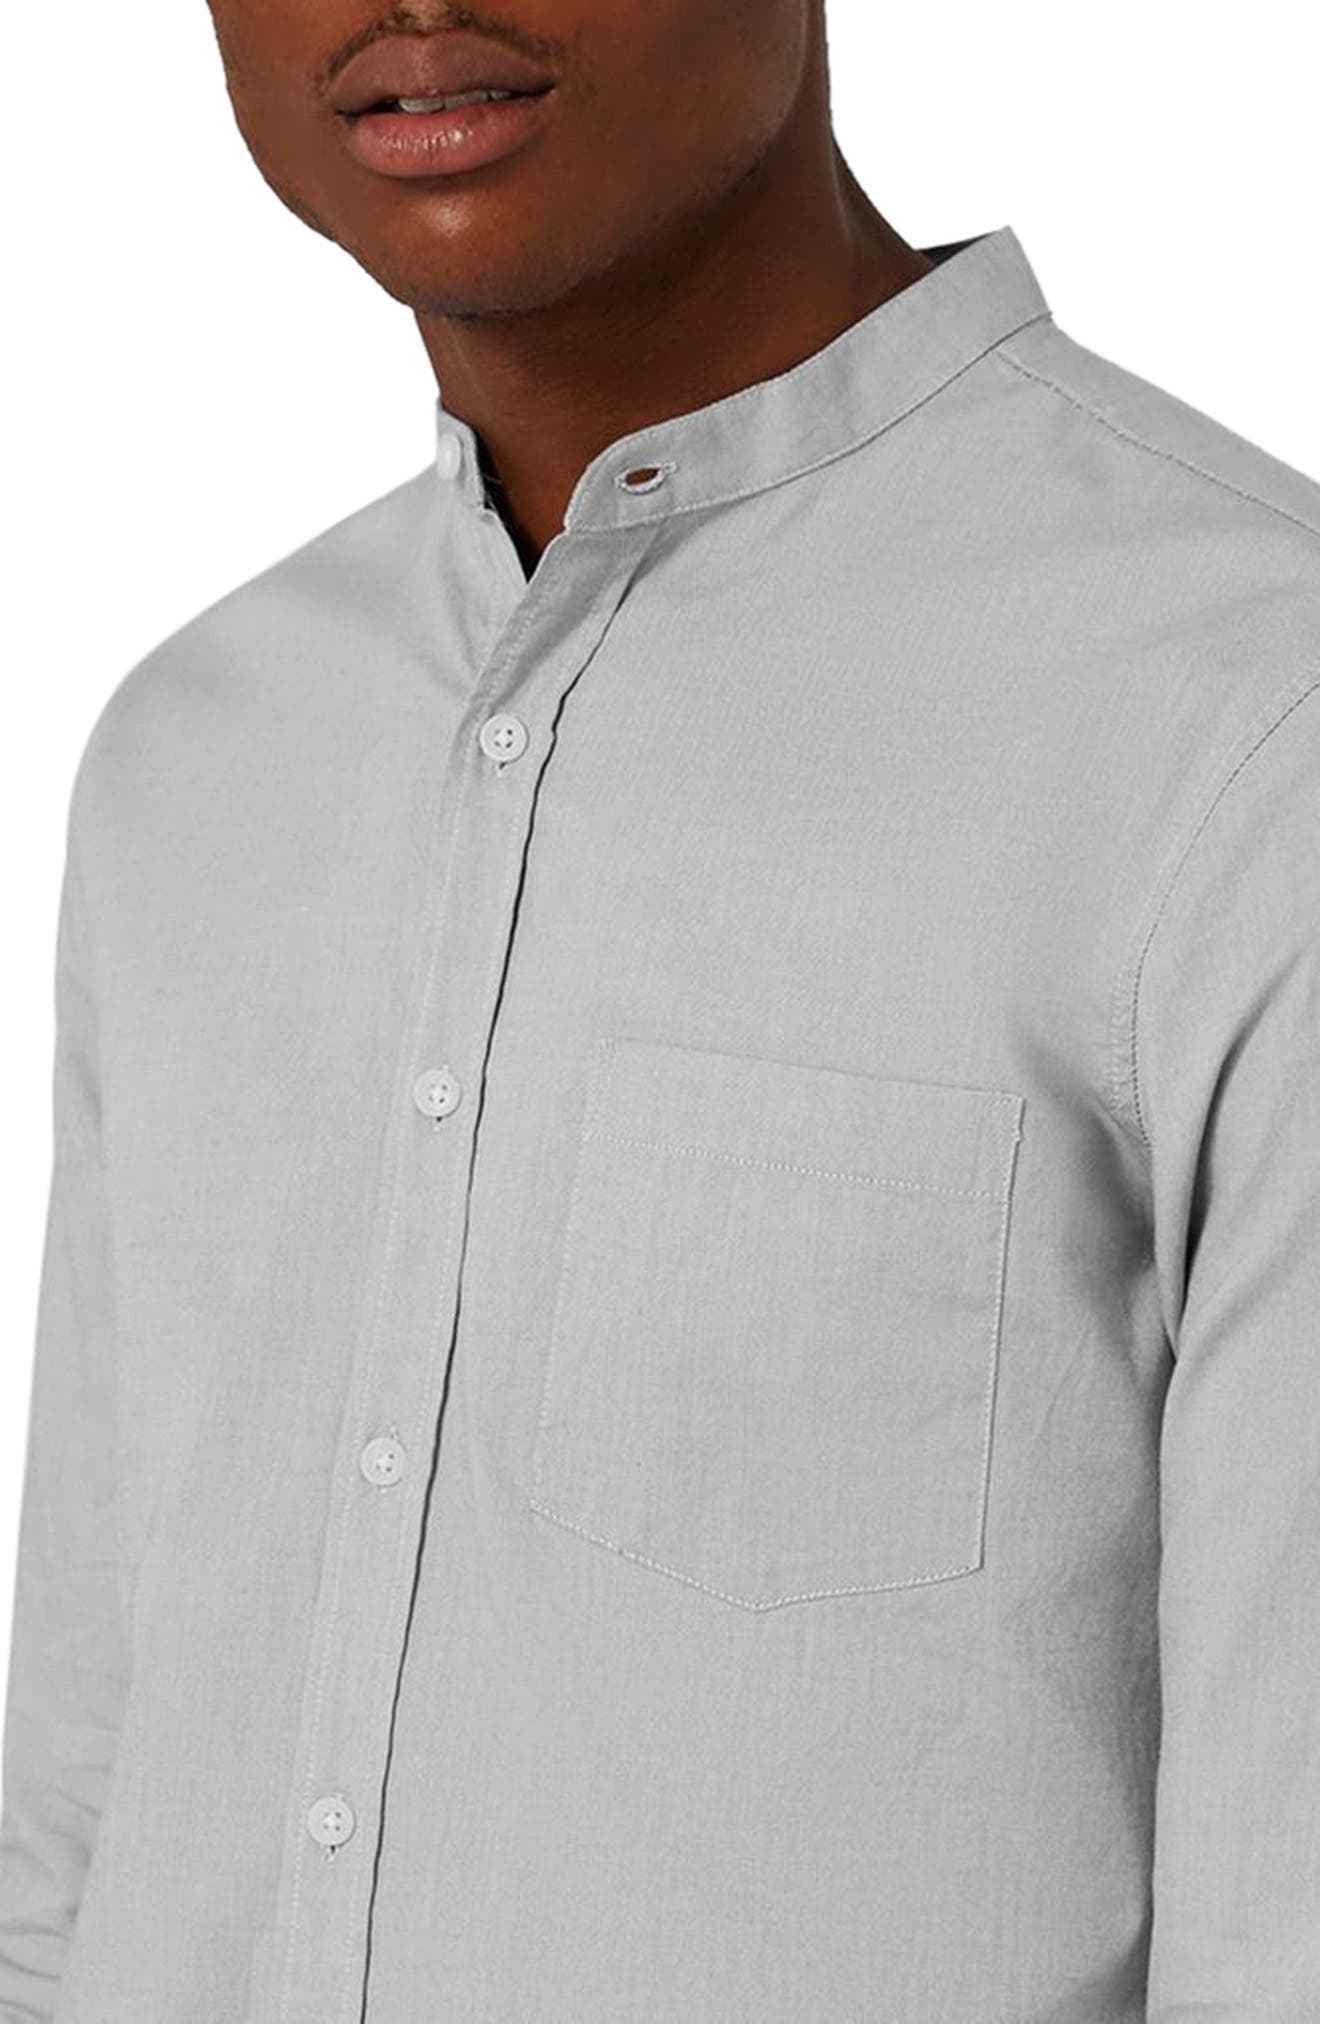 Muscle Fit Stretch Oxford Shirt,                             Alternate thumbnail 3, color,                             020